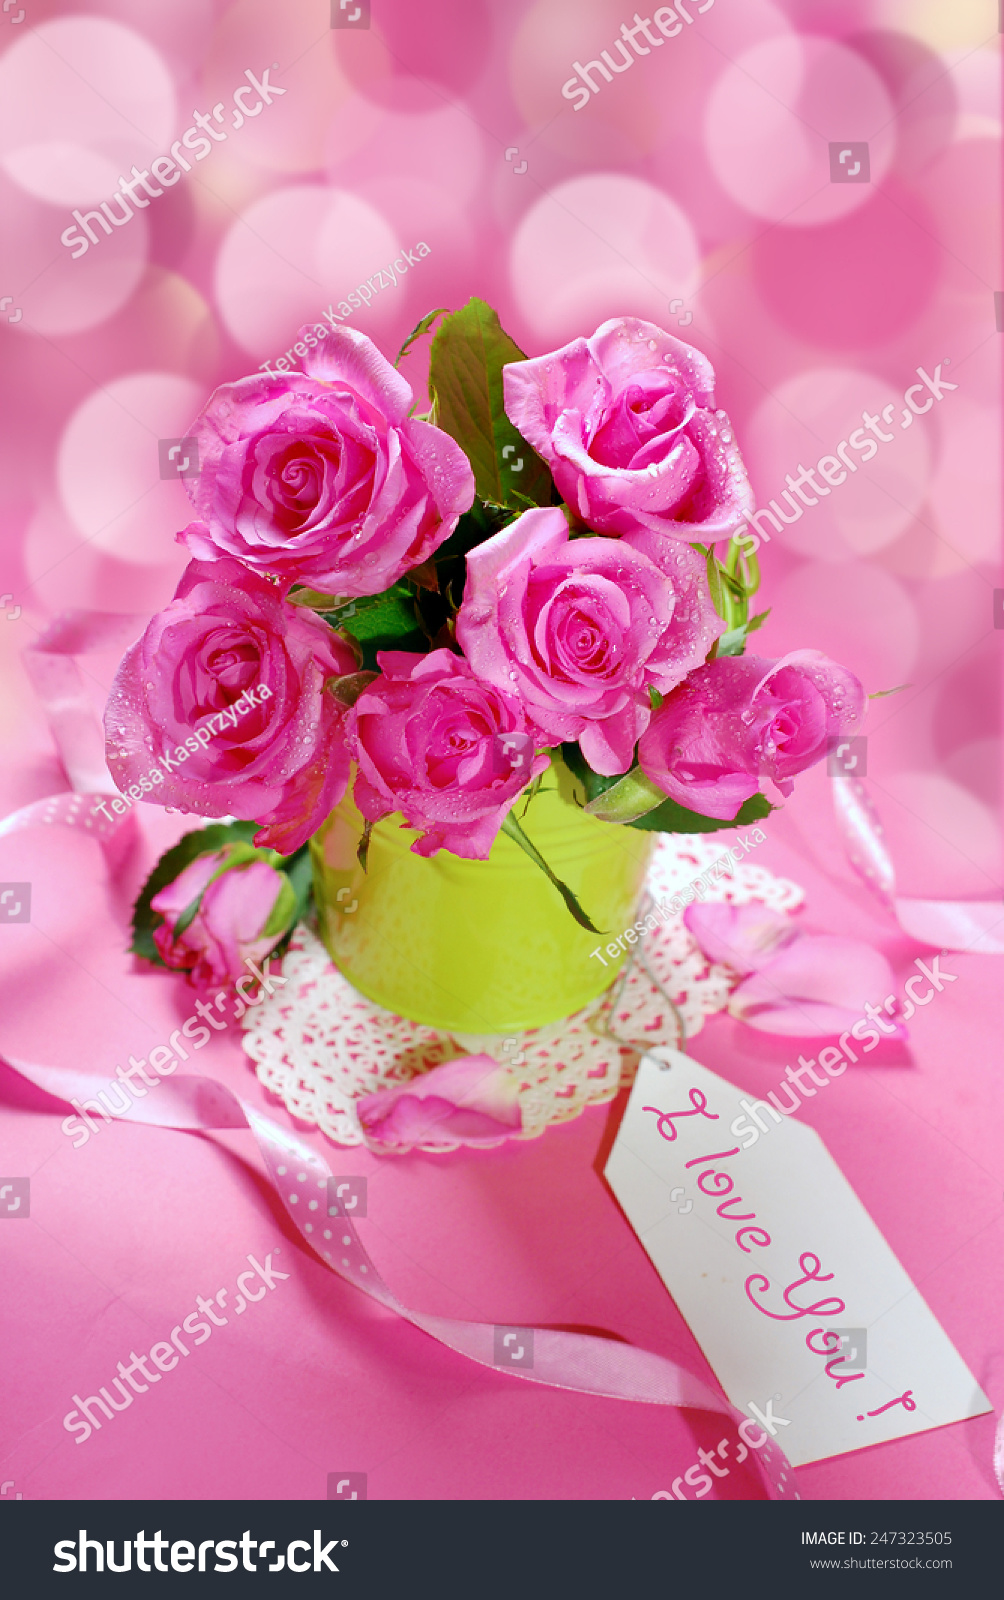 Bunch Of Roses And Paper Tag For Writing Text On Pink Background